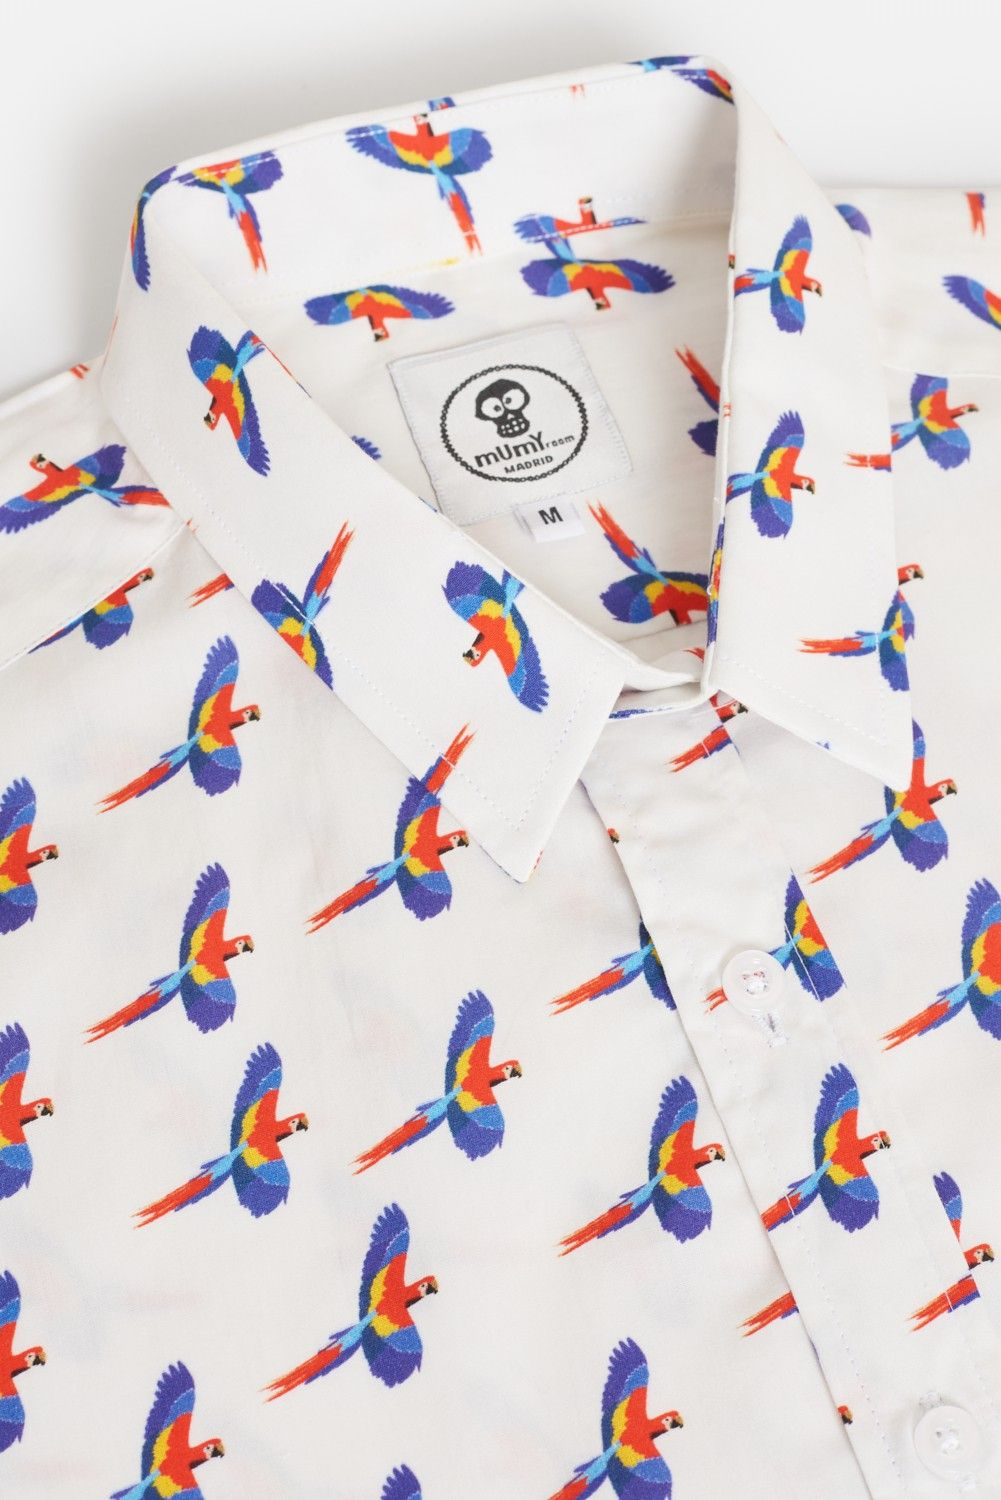 ADULT'S PRINTED SHIRT FLYING MACAW